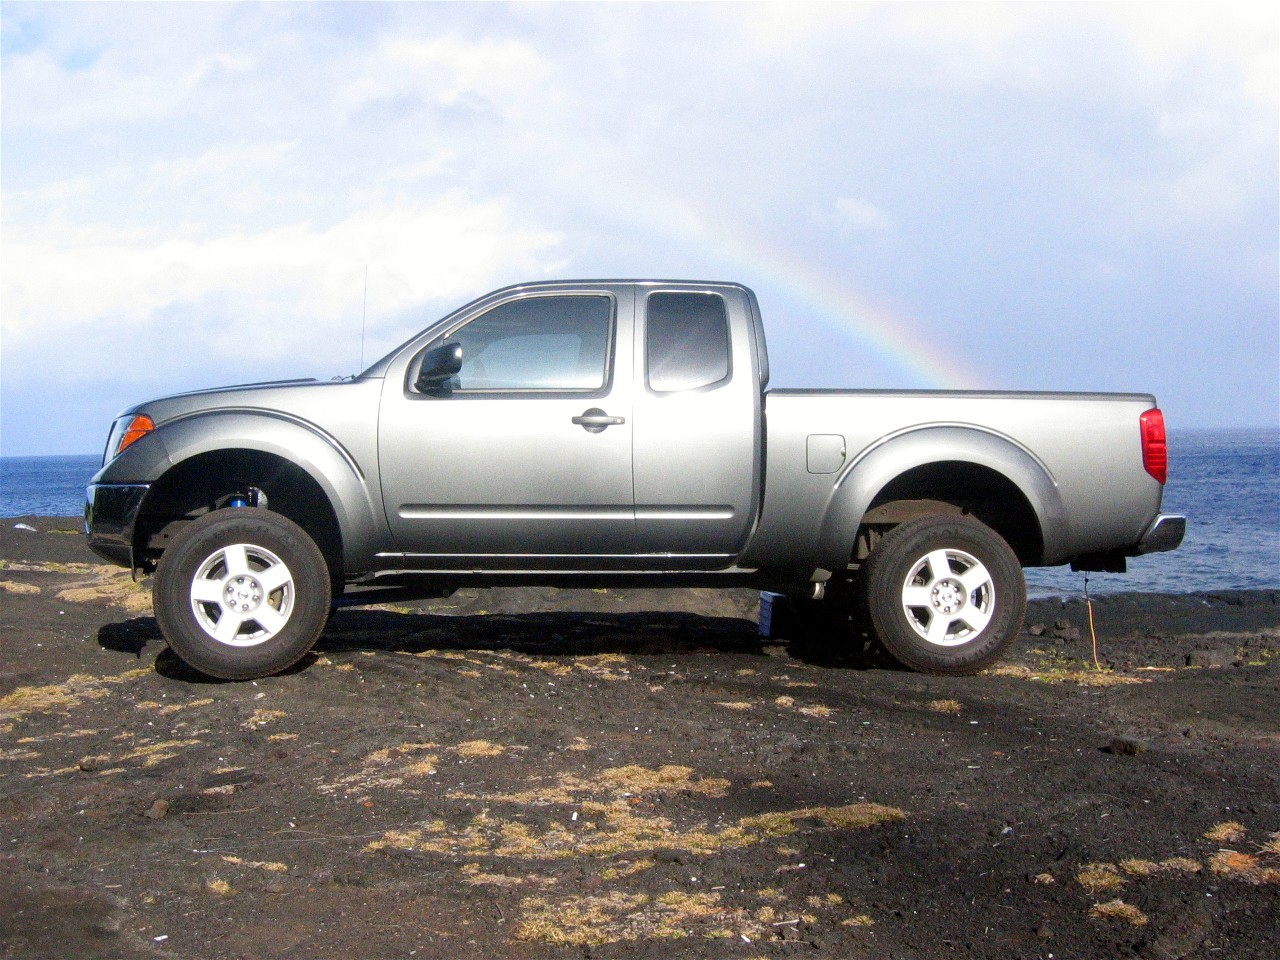 15 Inch Tires >> Lifted FRONTY pics - Nissan Frontier Forum